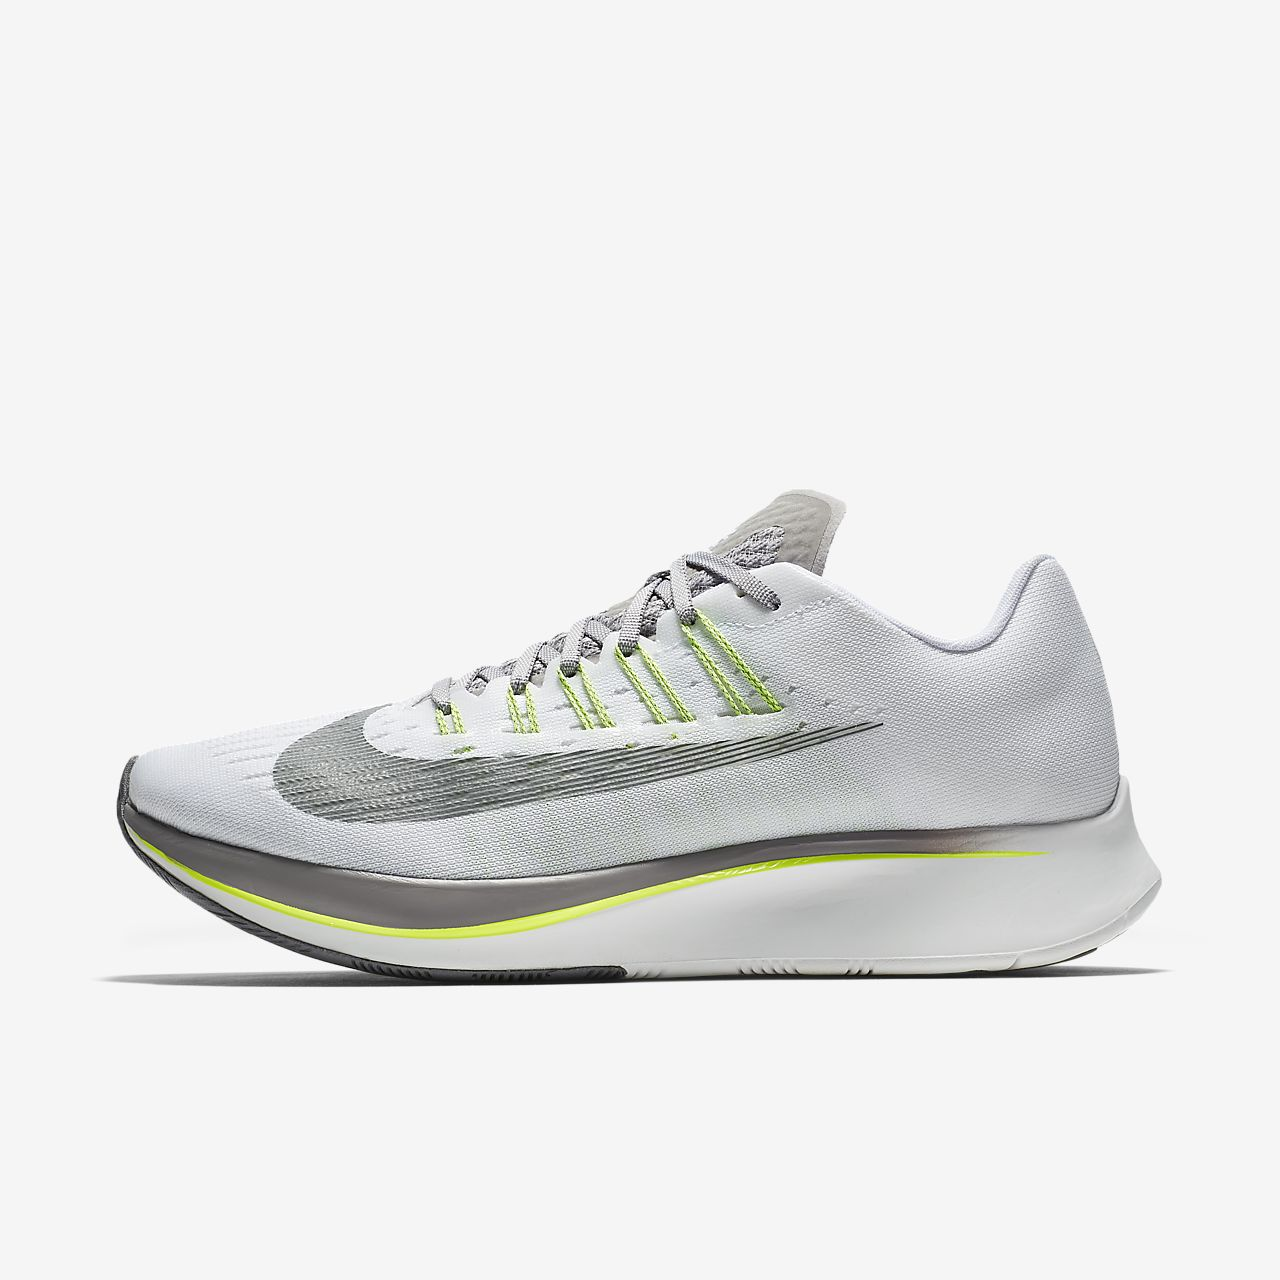 sports shoes 3e4b6 ecbaf ... Nike Zoom Fly Men s Running Shoe